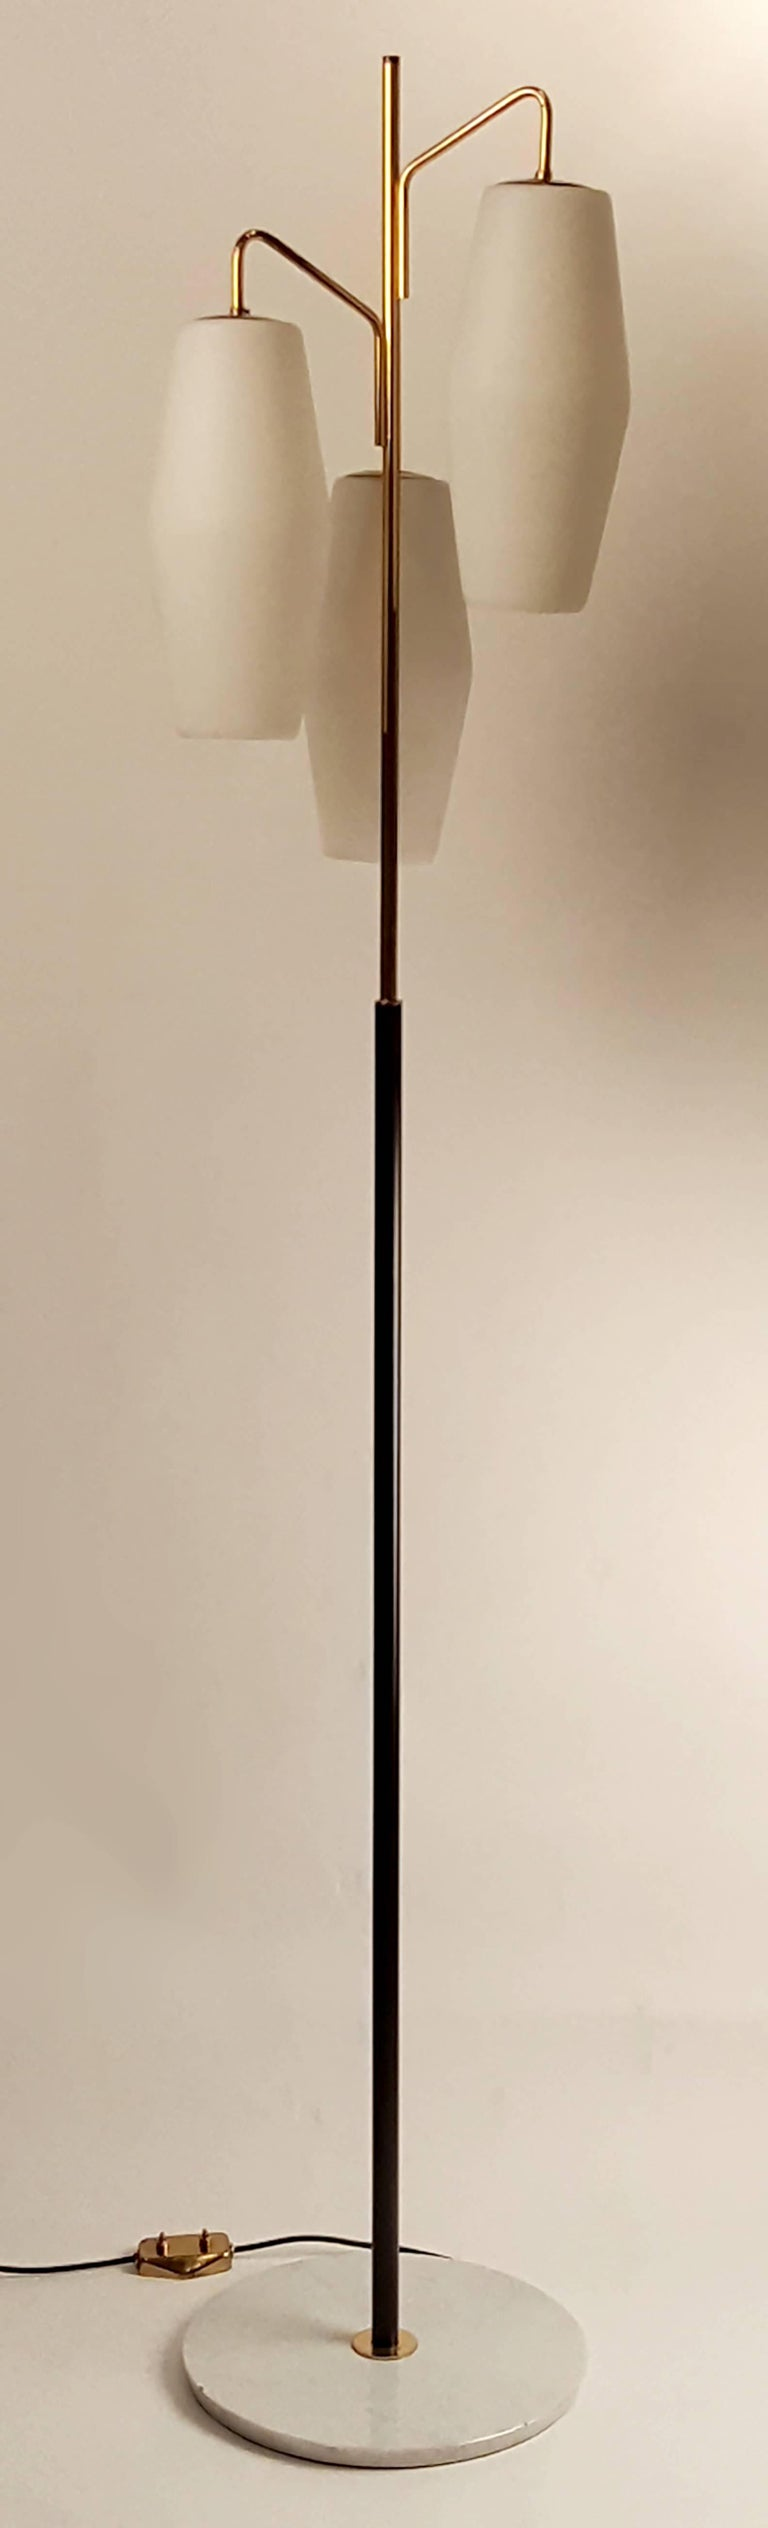 Italian Modernist Stilnovo Floor Lamp with Frosted Glass Shades and Marble Base 3